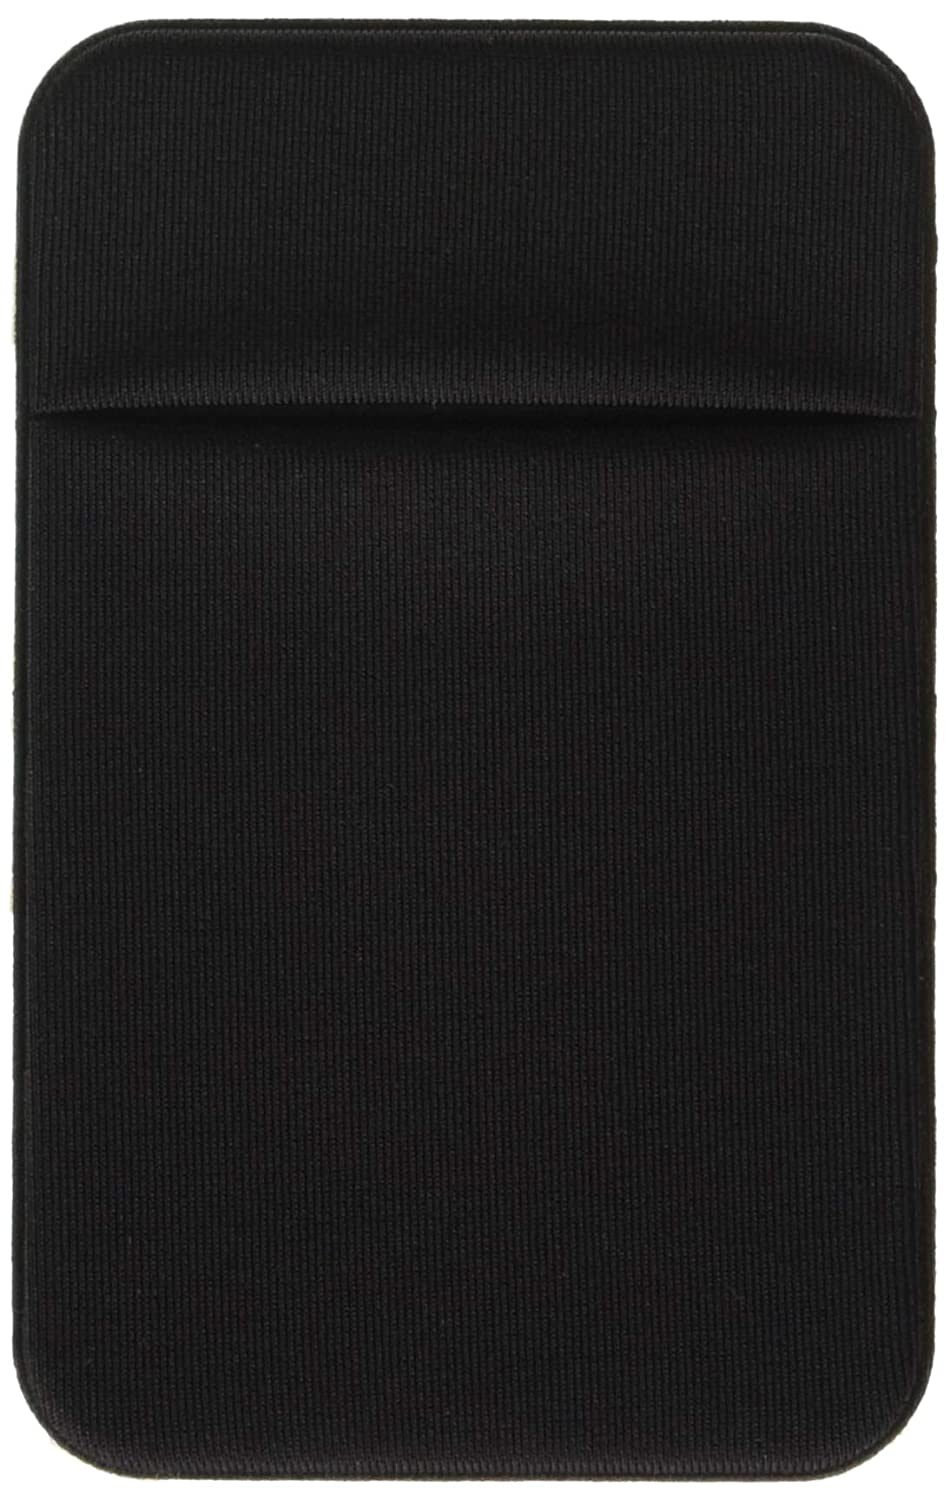 CaseArtPlus rrx-61 Credit Card Secure Holder Stick on Wallet (Lid) Discreet ID Holder Lycra Spandex Card Sleeves for Smartphones, iPhone 6, Samsung Galaxy Cell Phone Wallet Case 3M Adhesive - Black